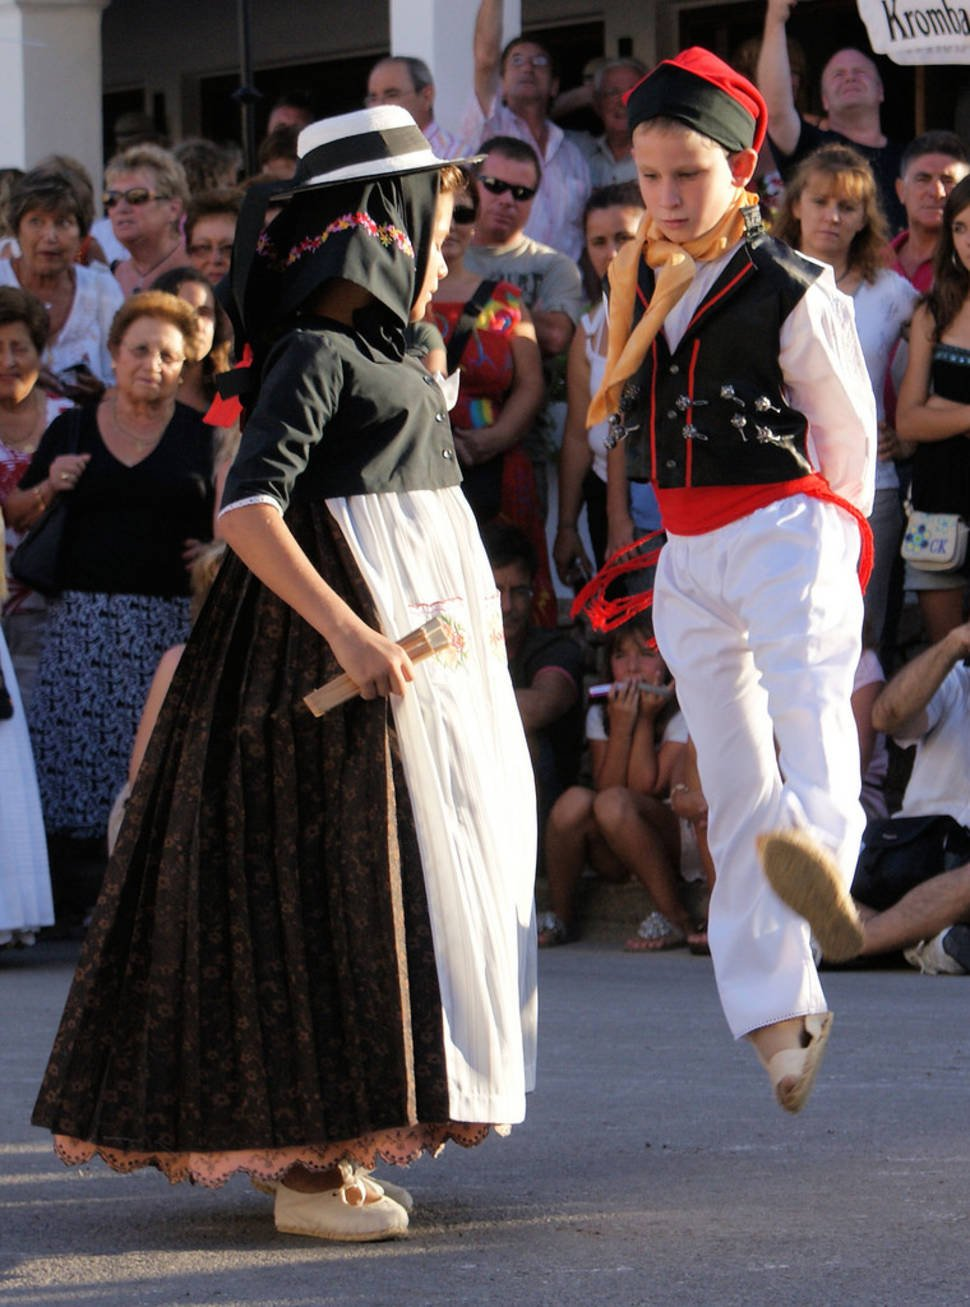 Best time to see Ball Pagès: Traditional Ibizan Folk Dance in Ibiza